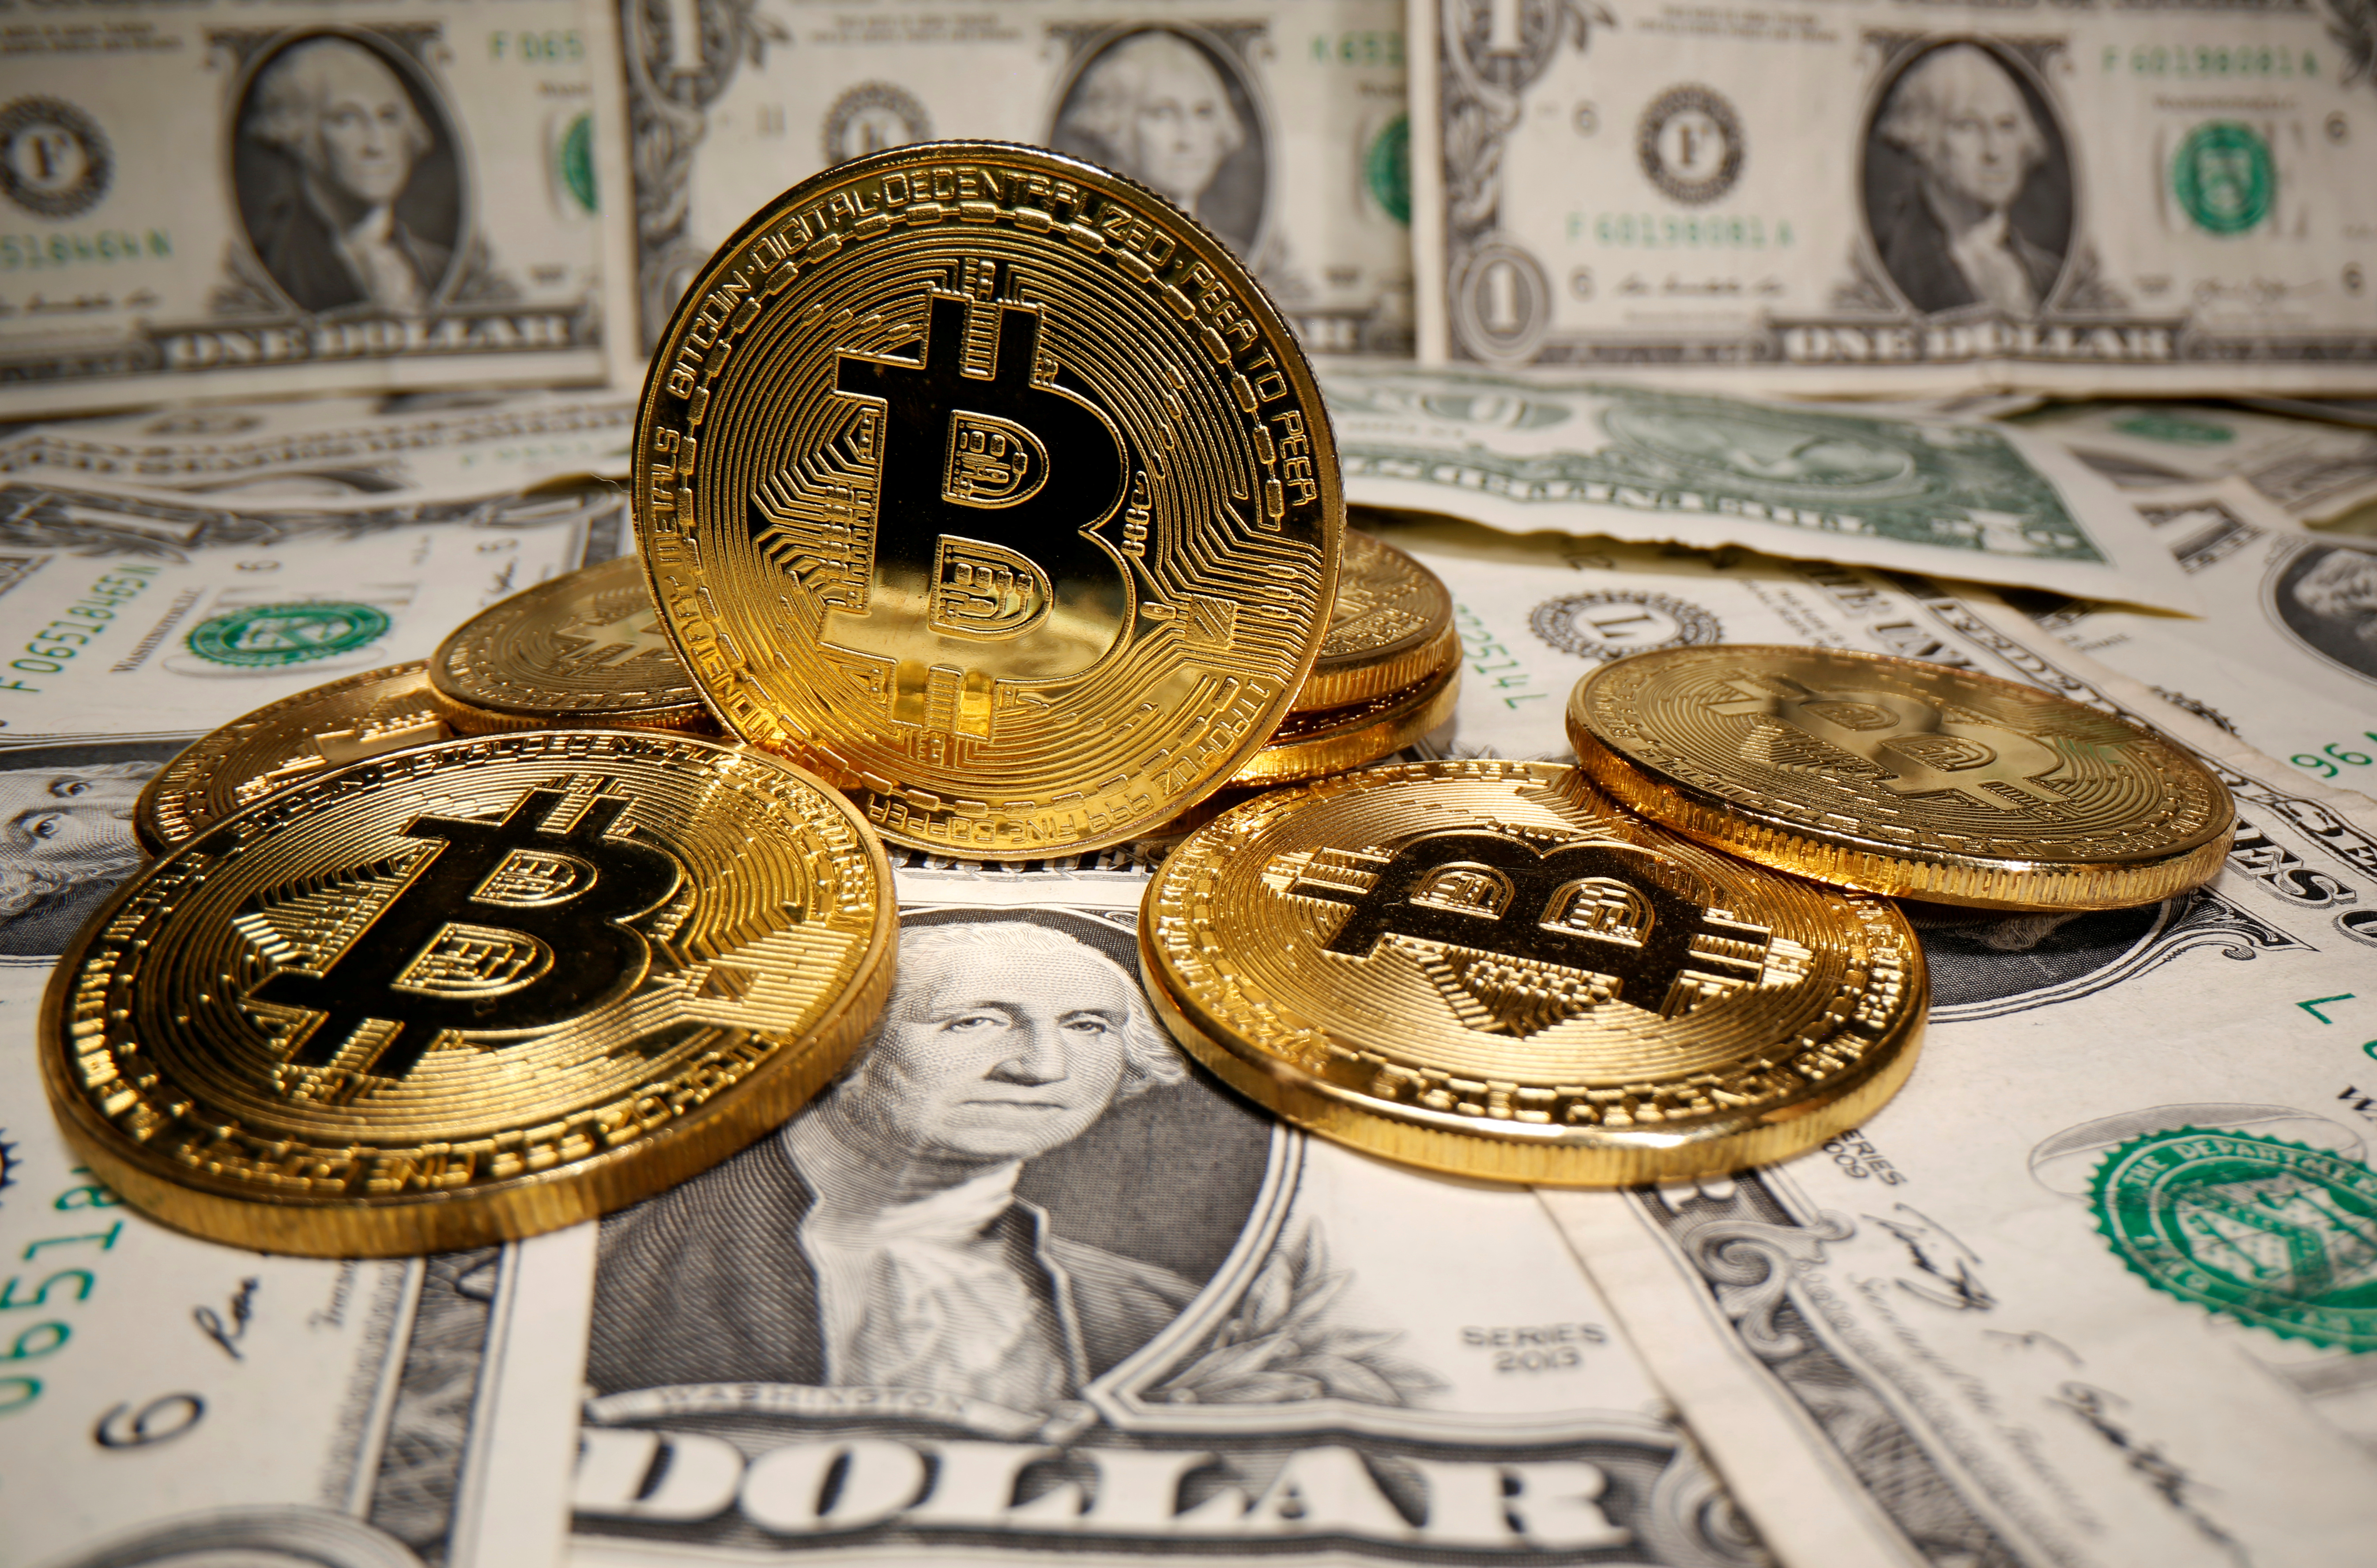 Representations of virtual currency Bitcoin are placed on U.S. Dollar banknotes in this illustration taken May 26, 2020. REUTERS/Dado Ruvic/Illustration/File Photo